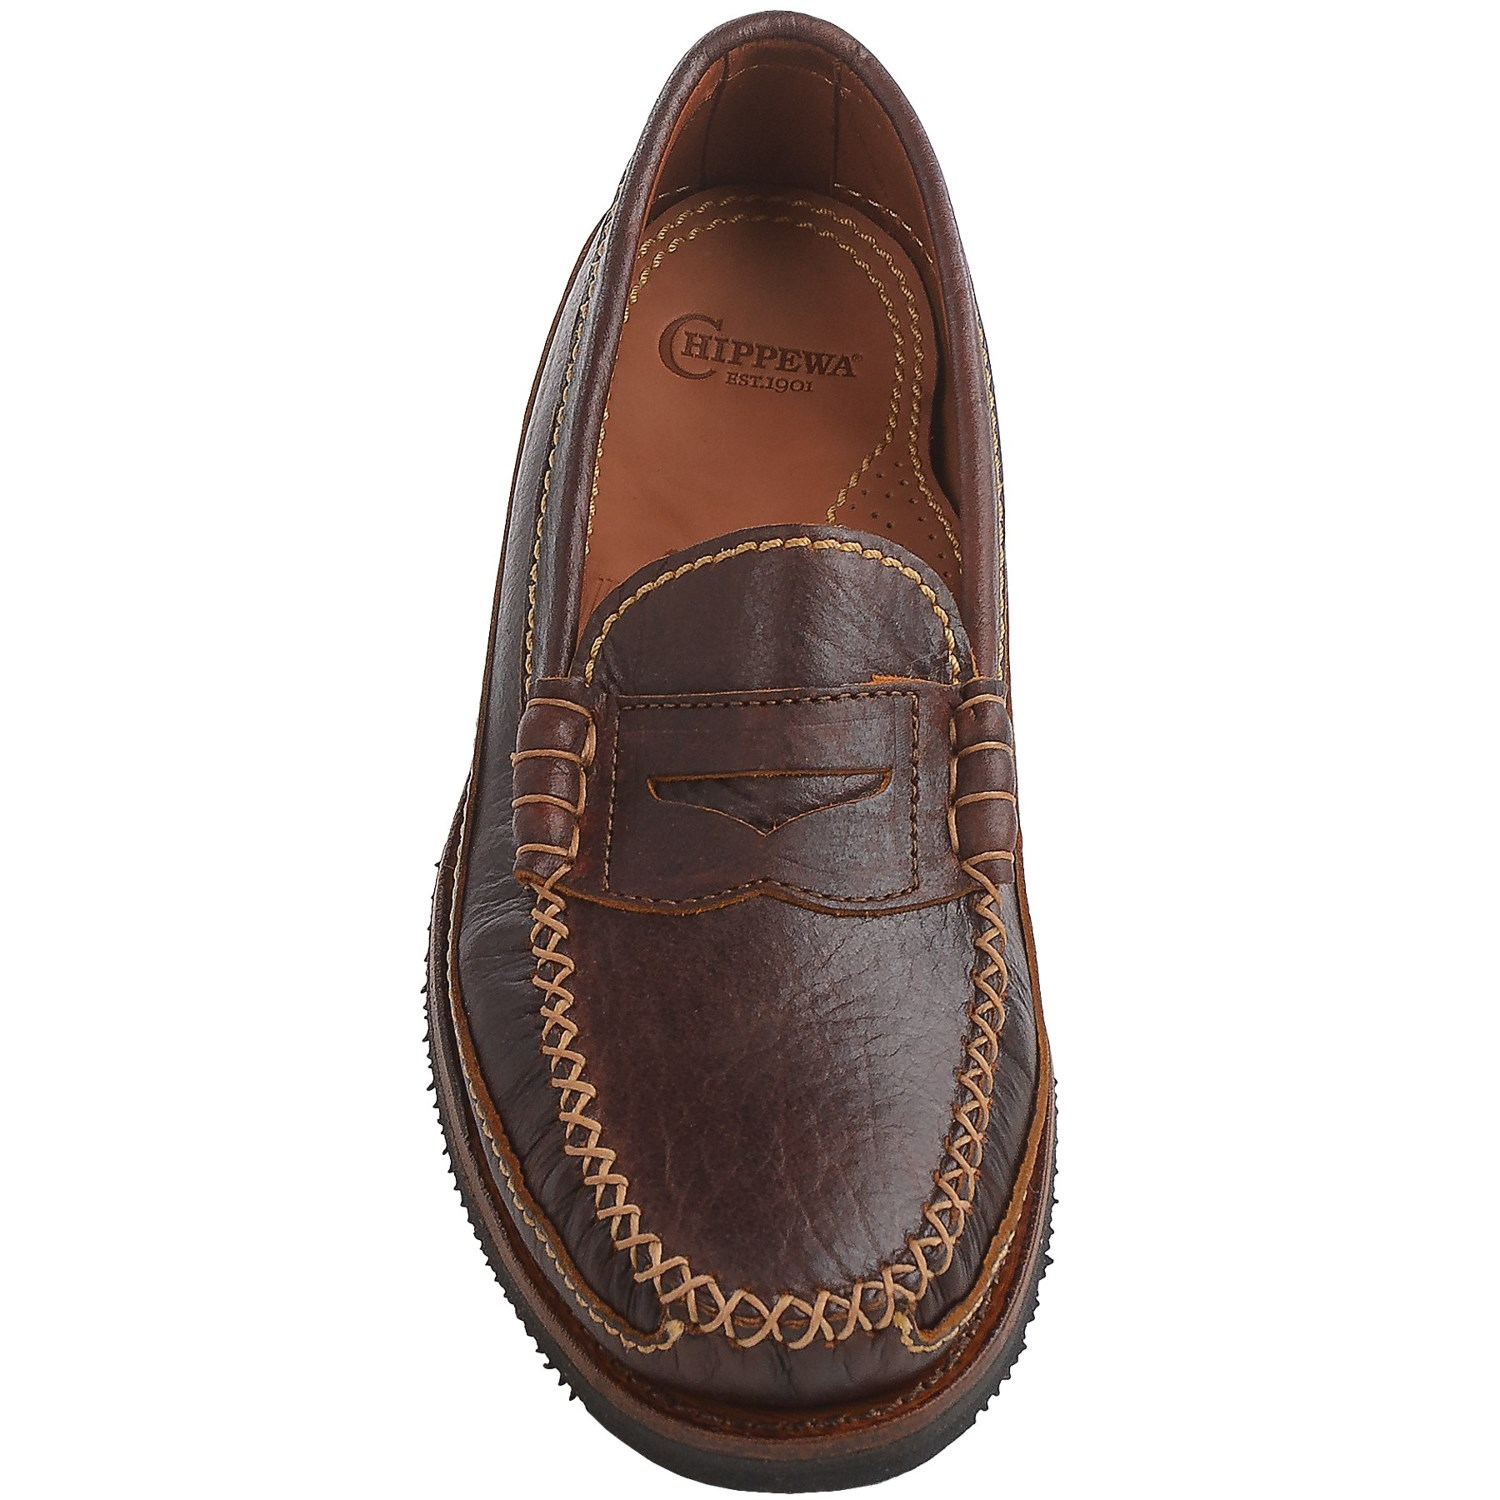 Chippewa American Bison Leather Penny Loafers (For Men ...